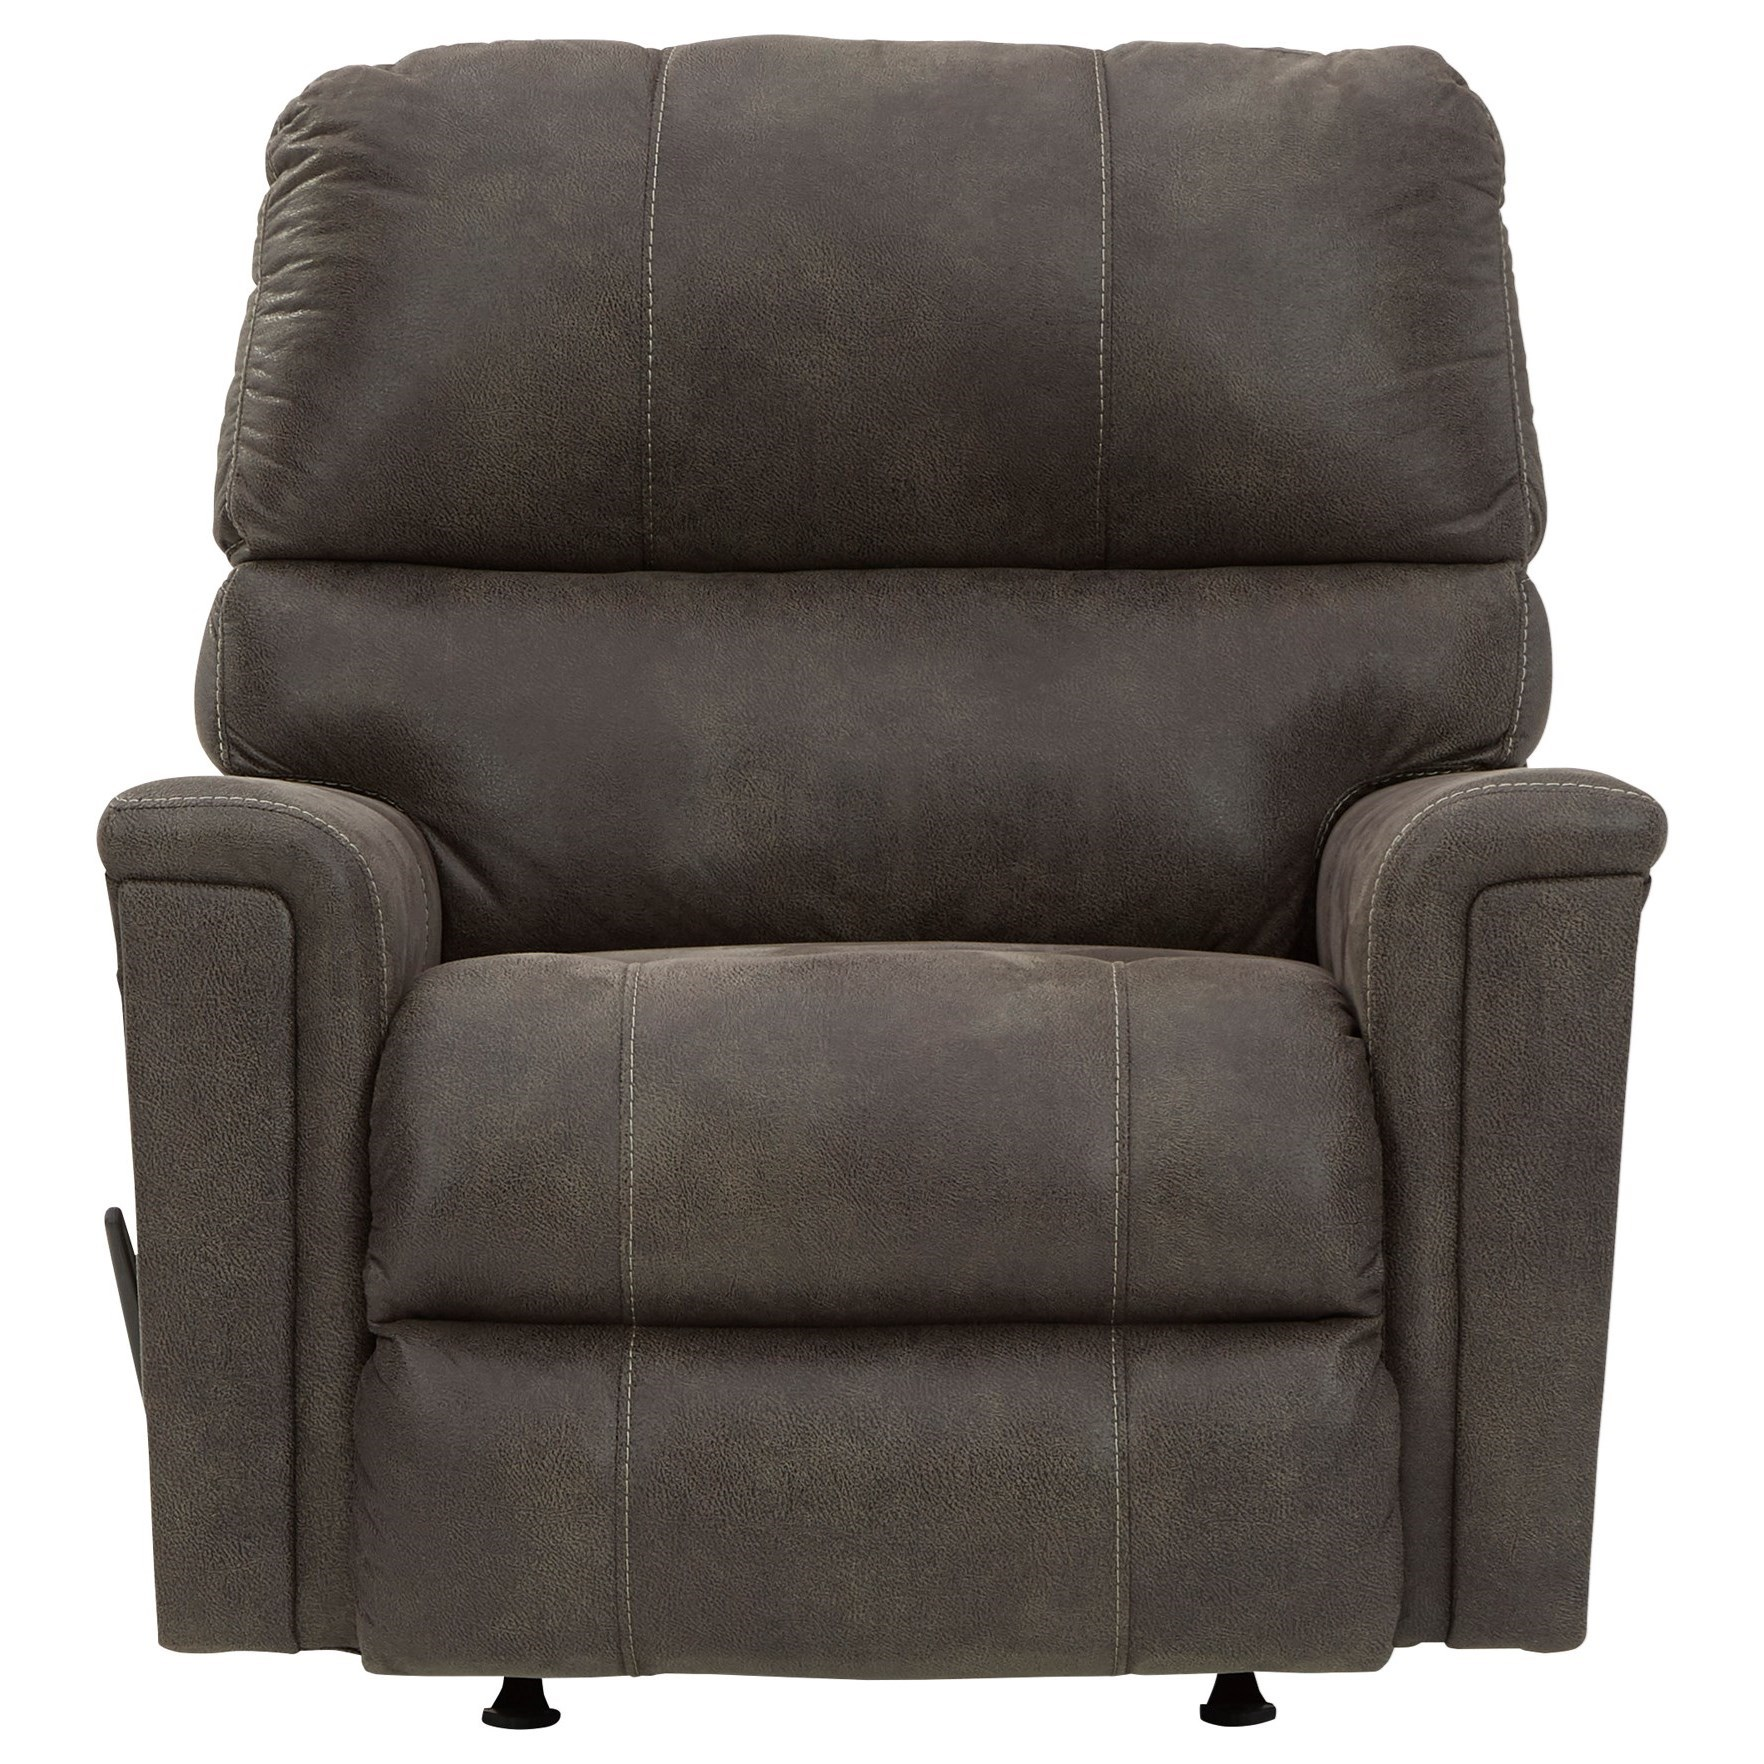 Navi Rocker Recliner by Signature Design by Ashley at Carolina Direct